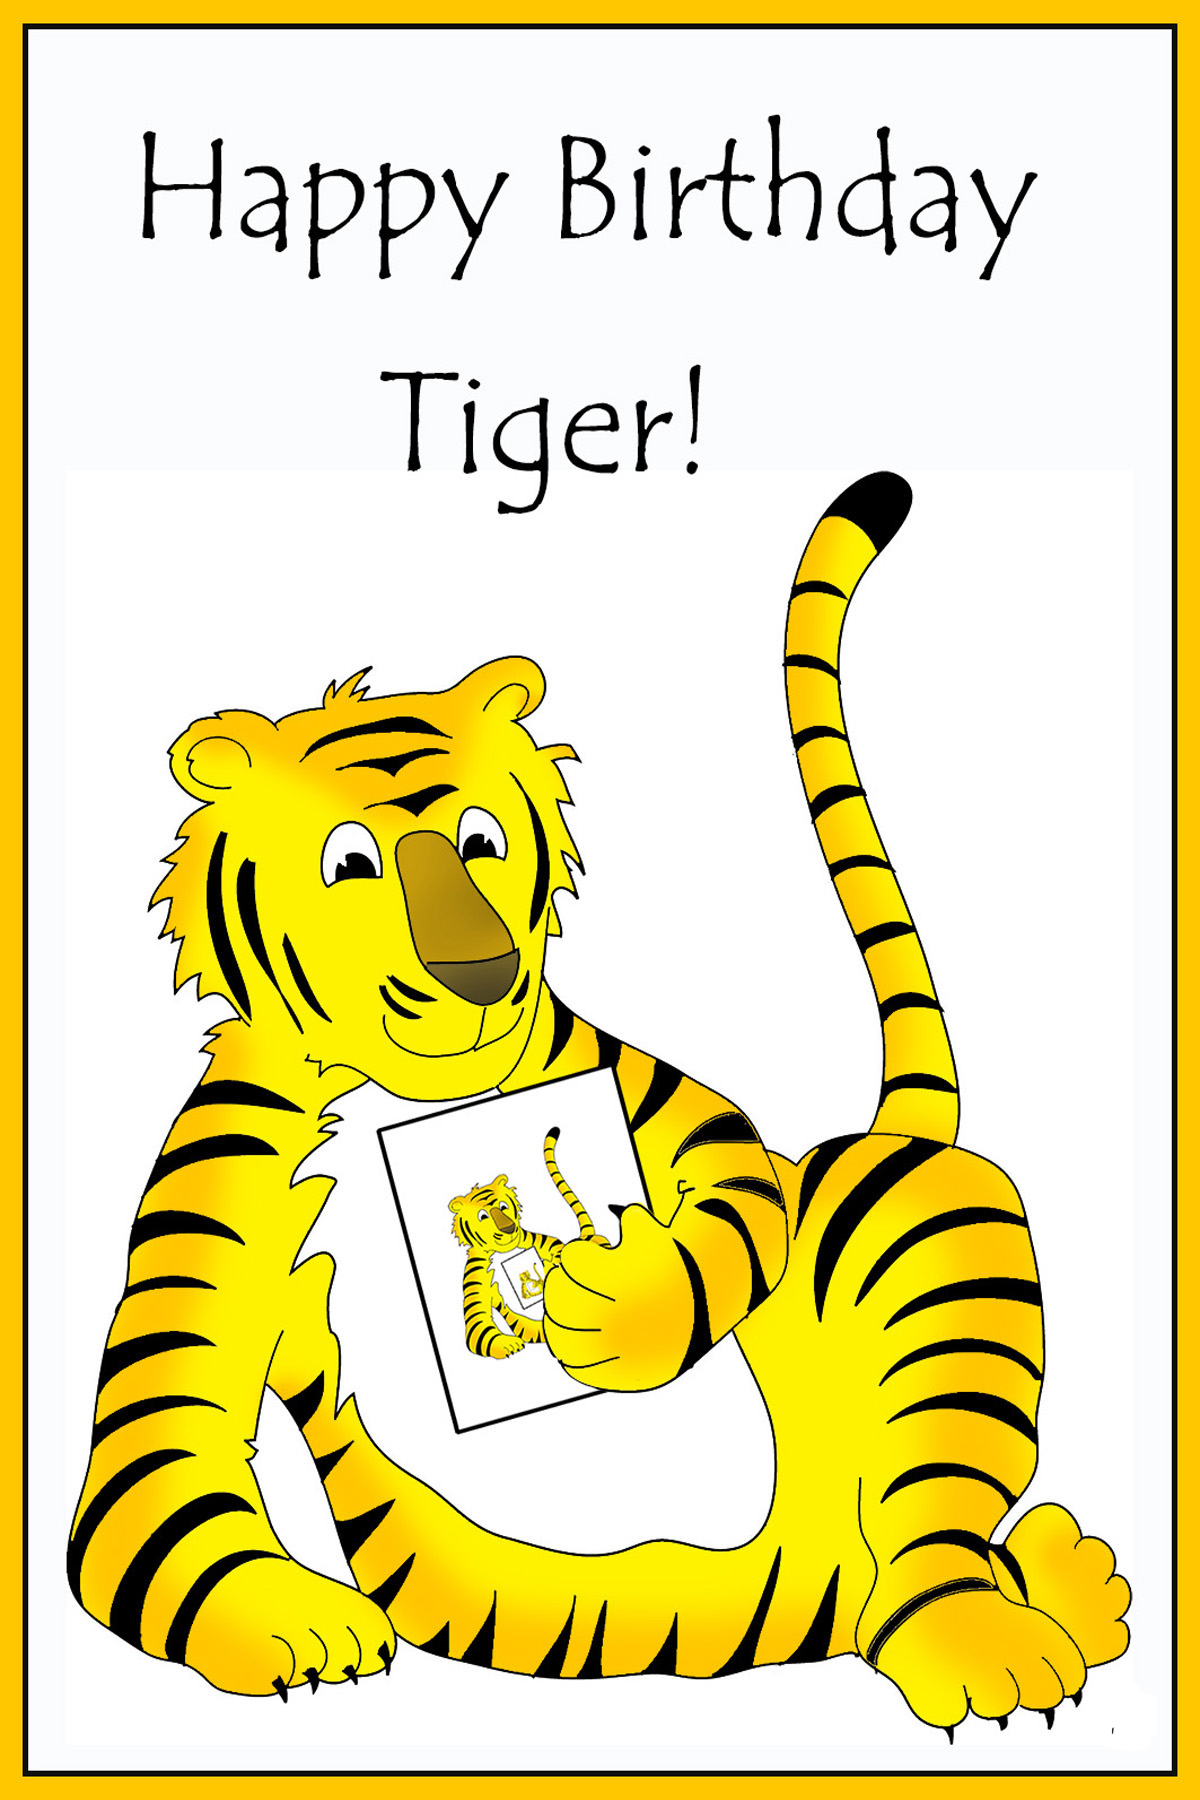 printable birthday card with a tiger for kids